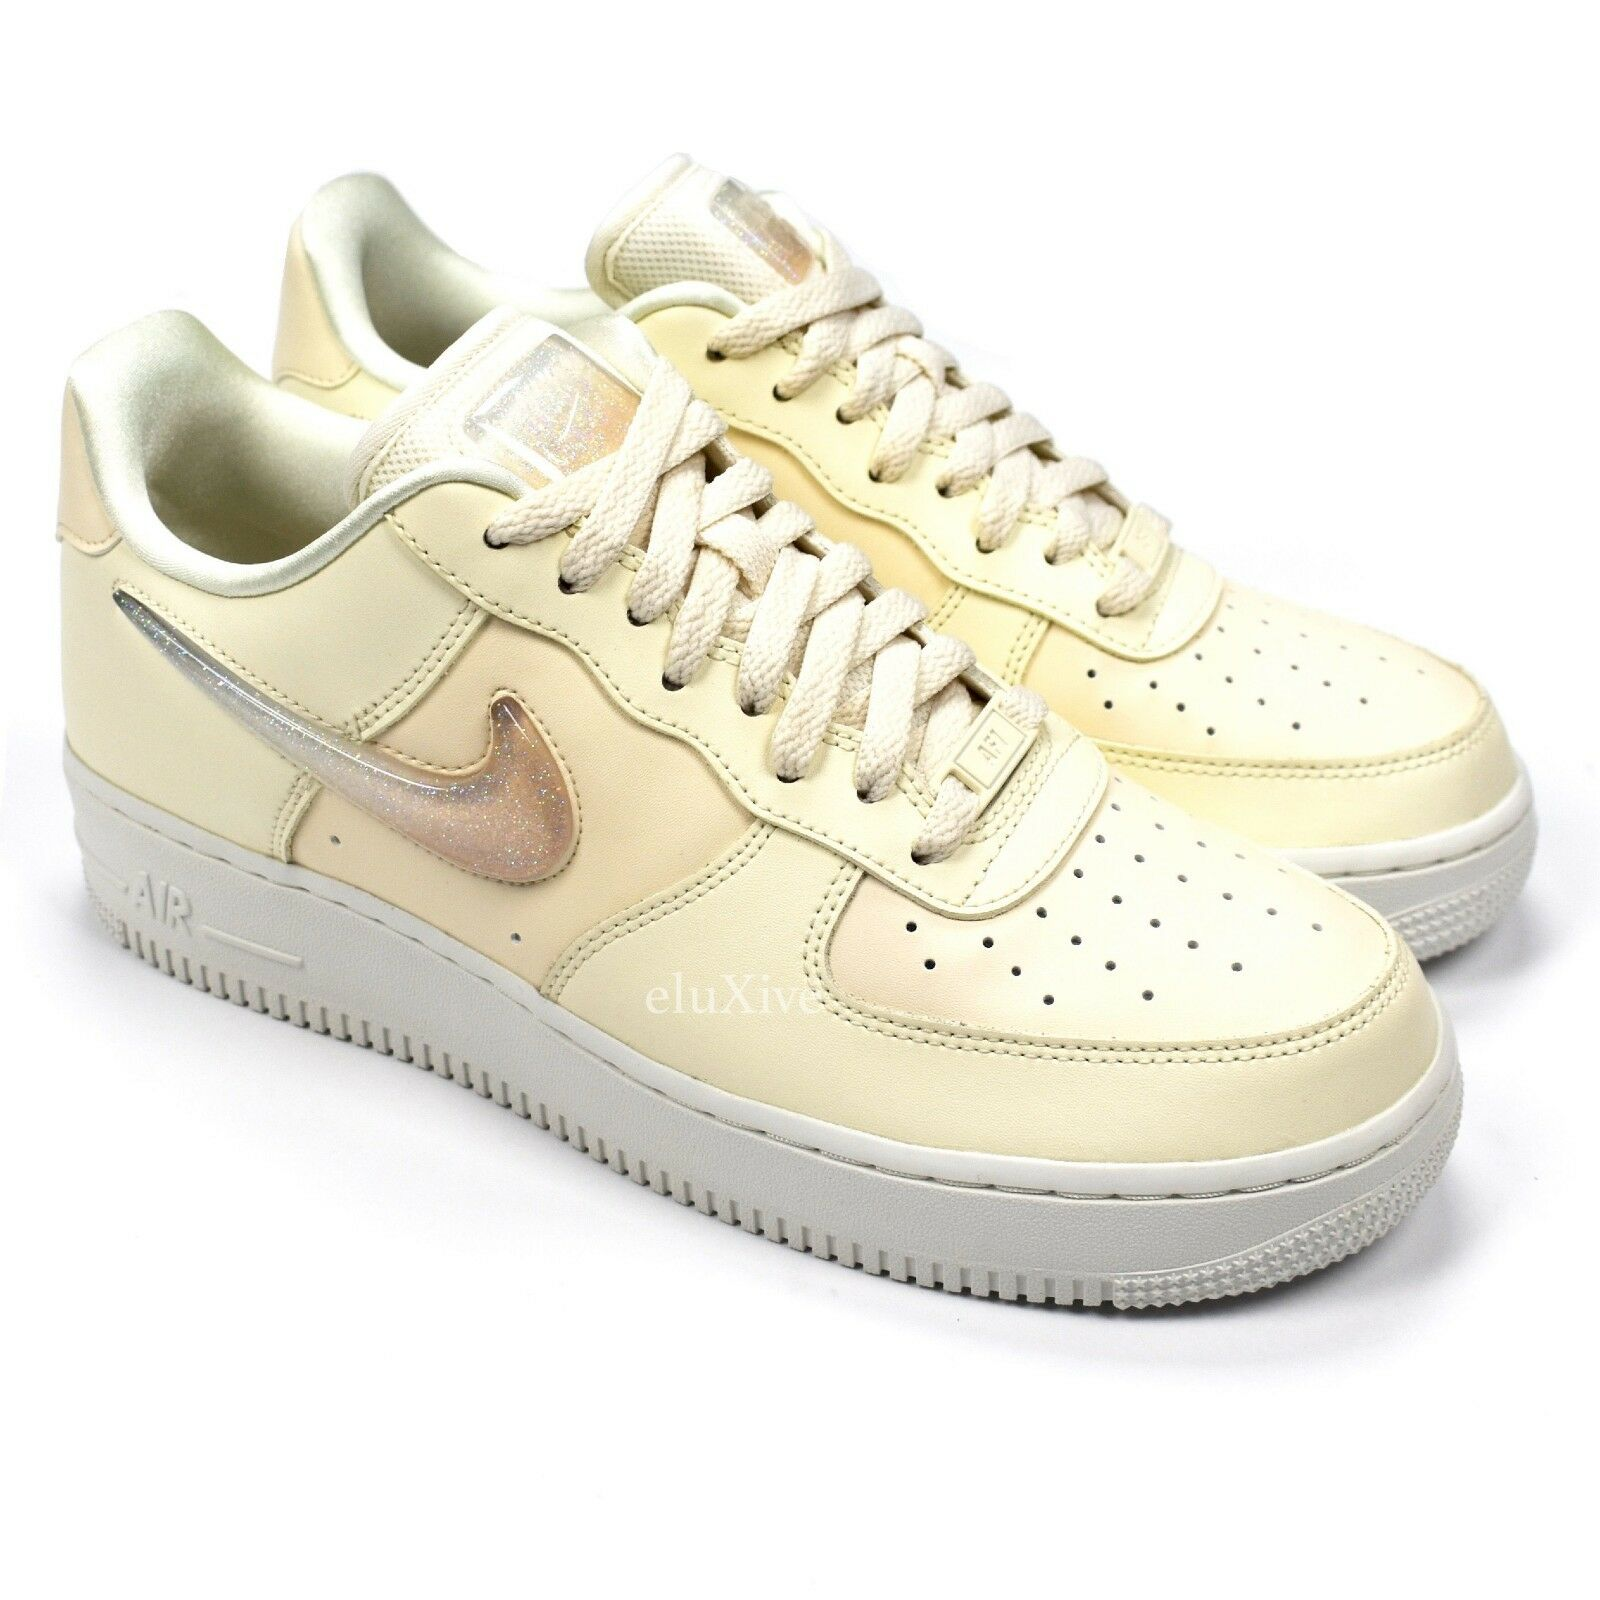 NWT Nike Air Force 1 07 SE PRM Jelly Jewel Swoosh Ivory White Sneakers AUTHENTIC